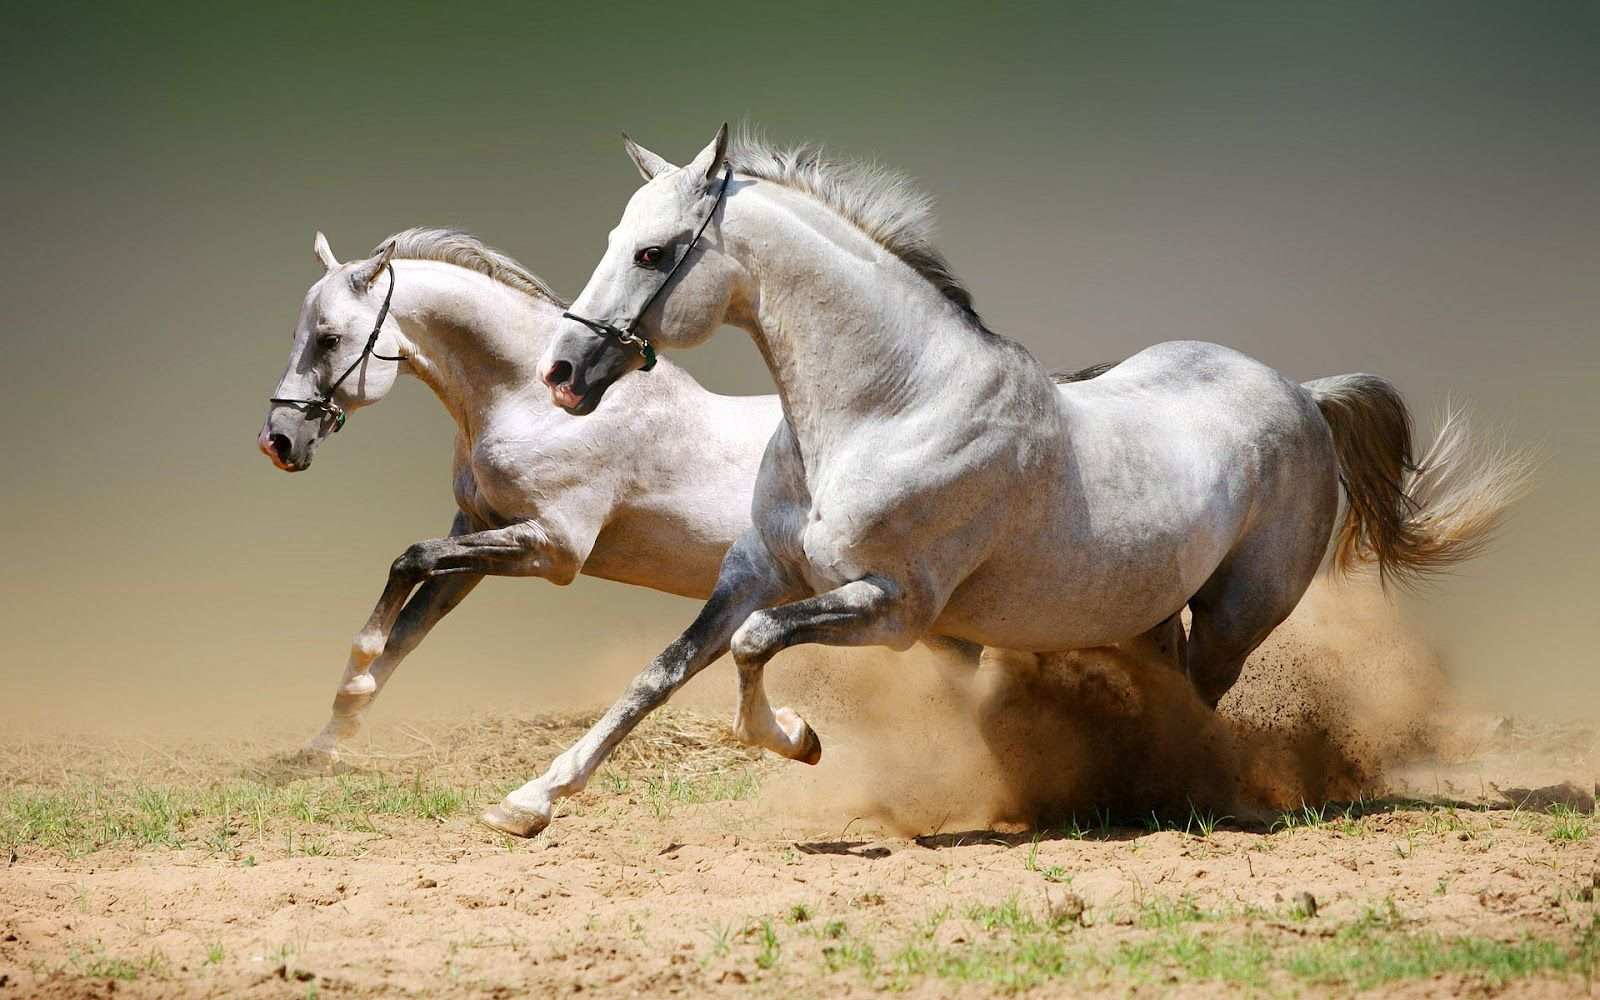 Horses Hd Animal Wallpaper With White Horses Running Fast Horse